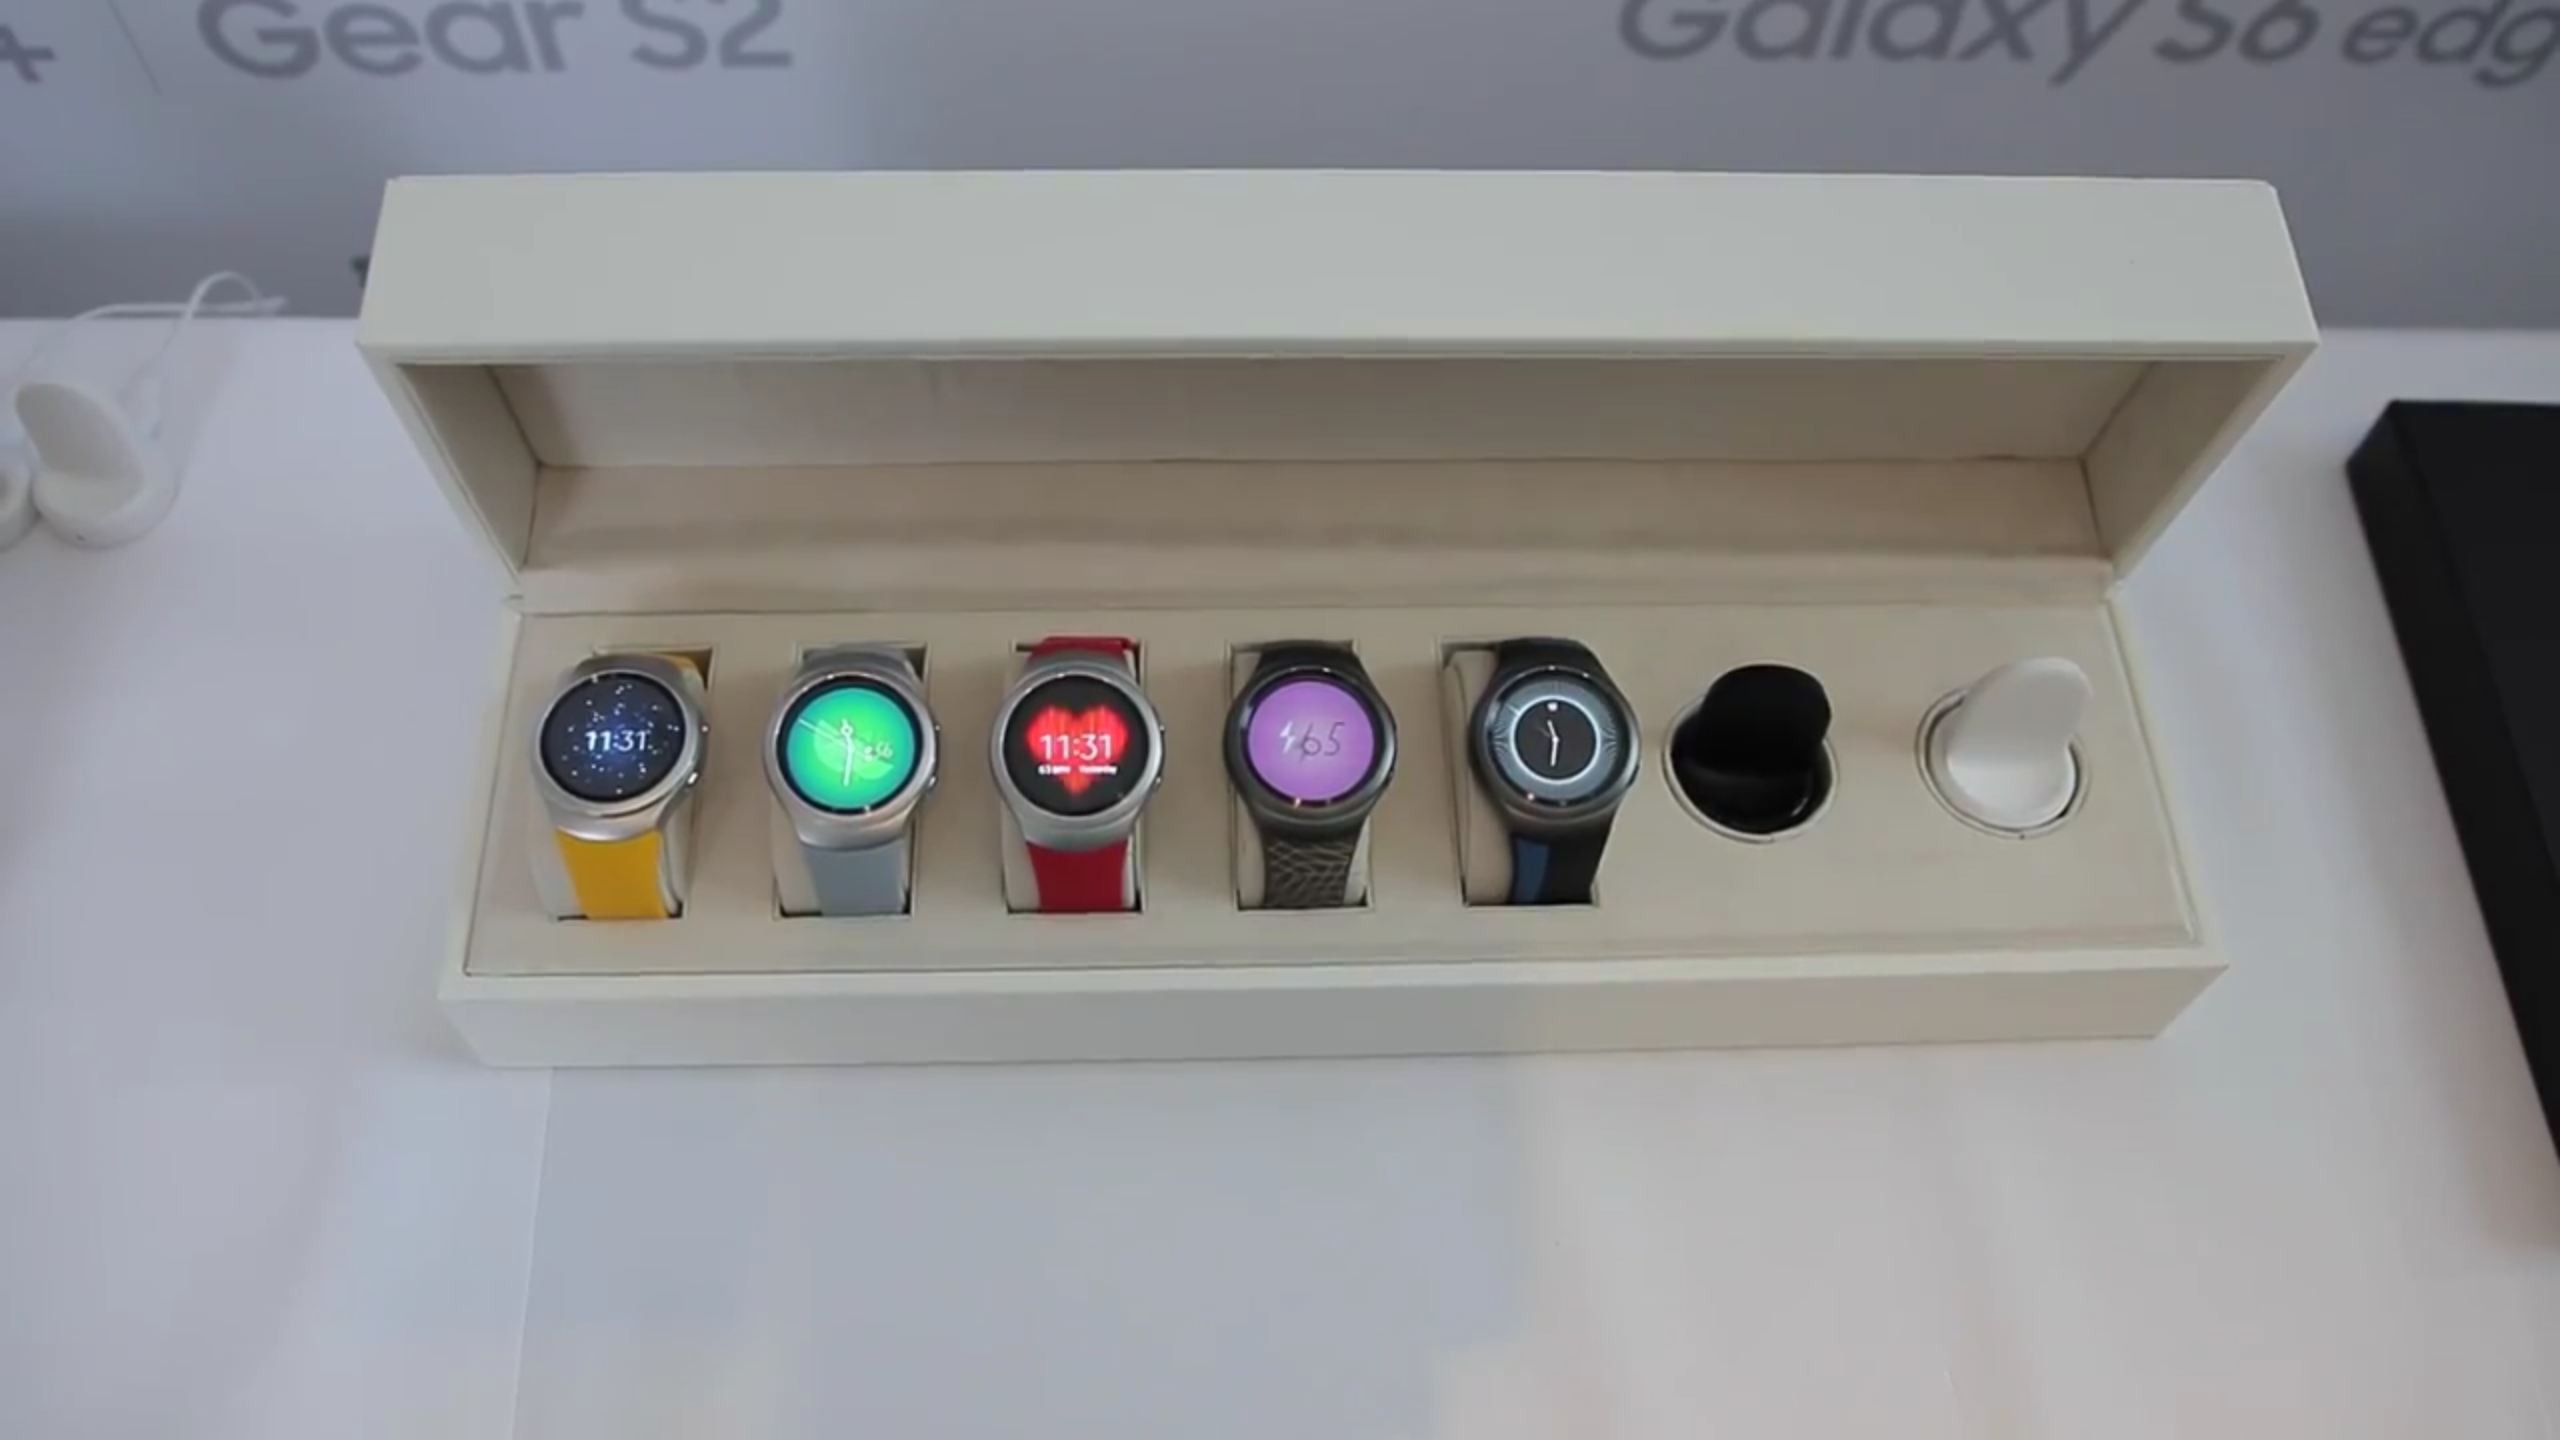 latest firmware for the gear s2 3g at&t